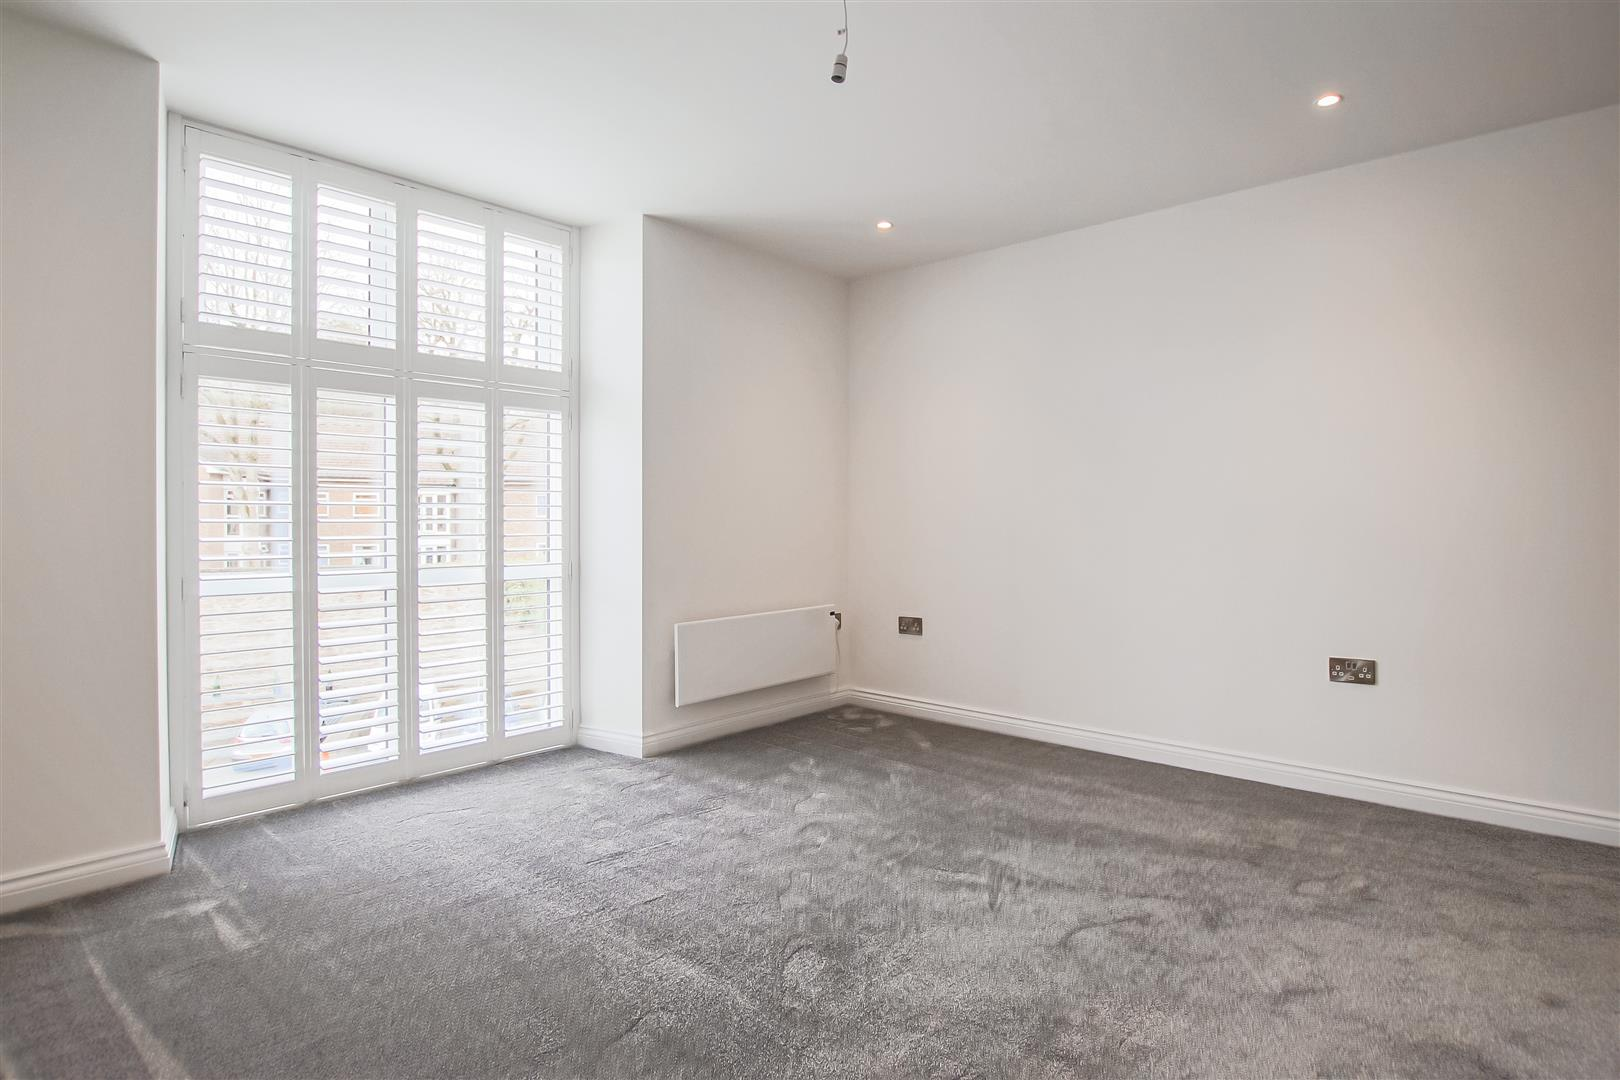 2 Bedroom Apartment For Sale - Image 11